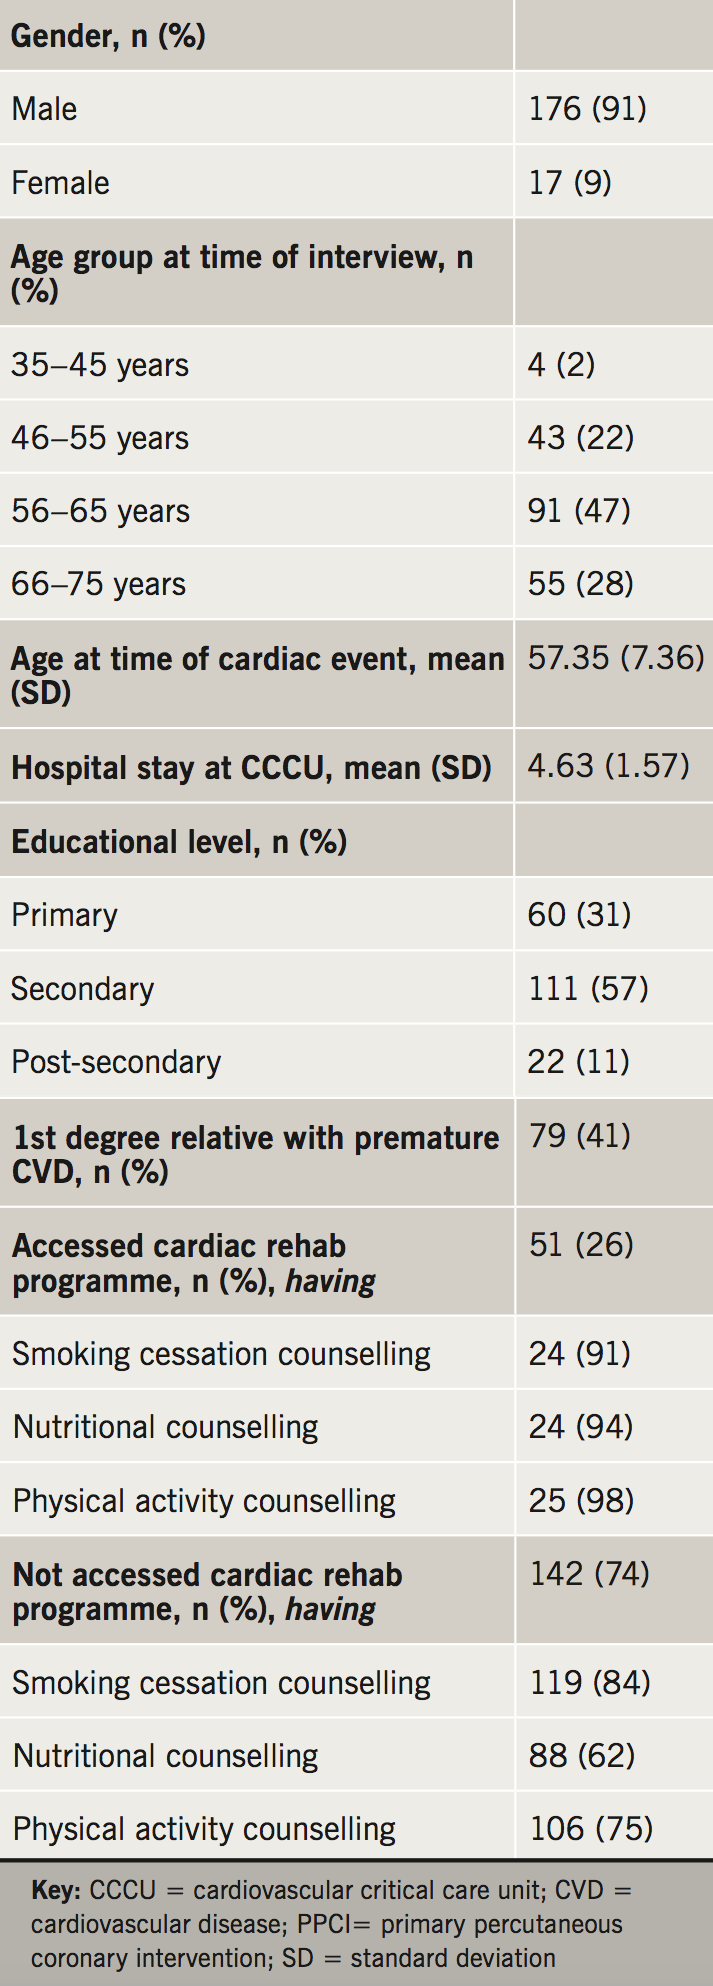 Mifsud - Table 1. Primary percutaneous coronary intervention (PPCI) participants' characteristics and access to cardioprotective counselling (n=193)